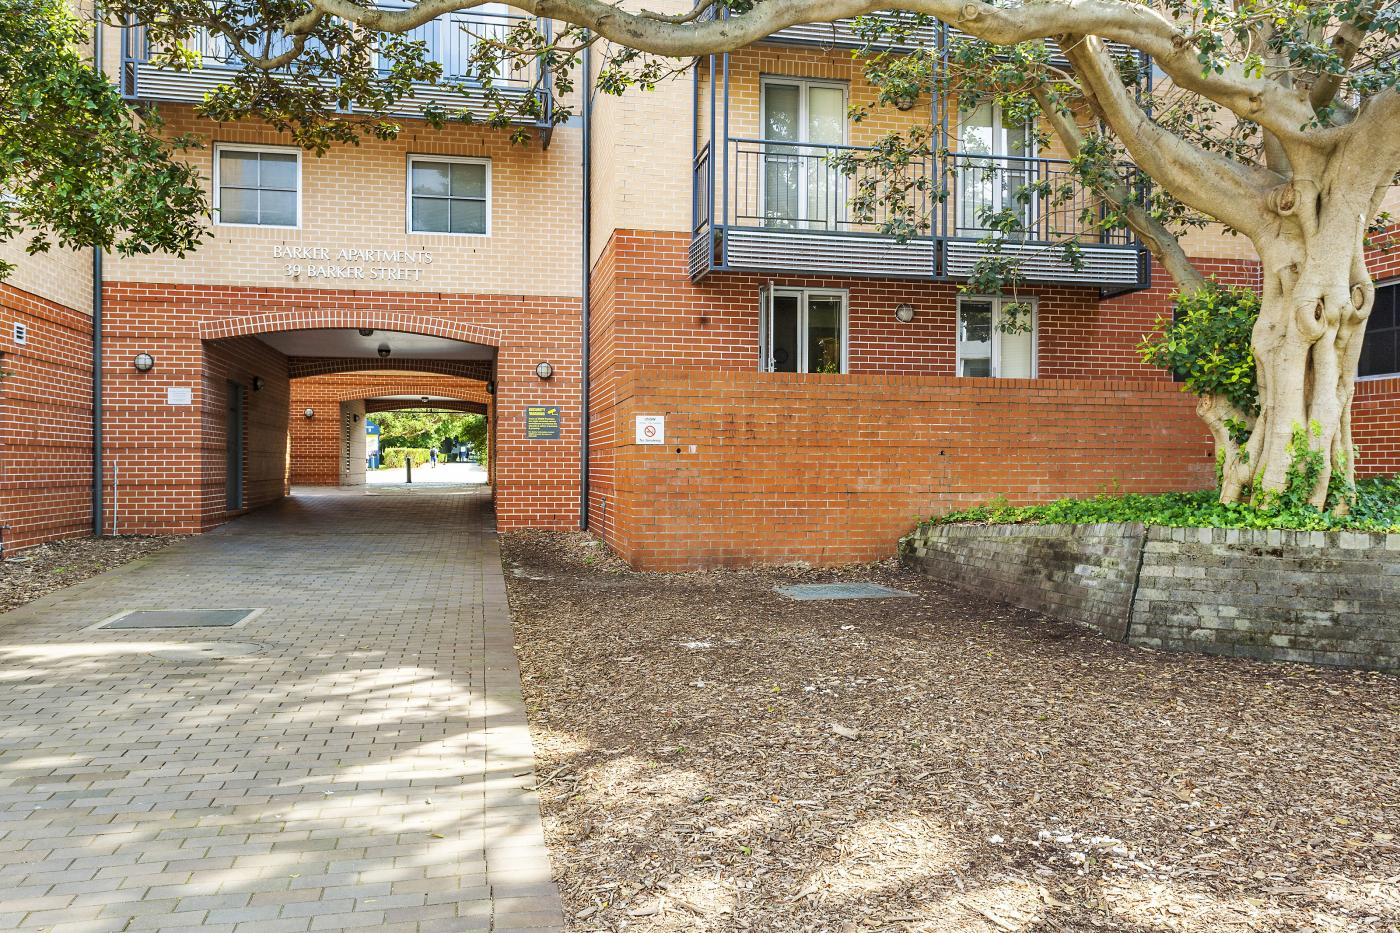 Unsw Accommodation Barker Street Apartments High St Expand Photo